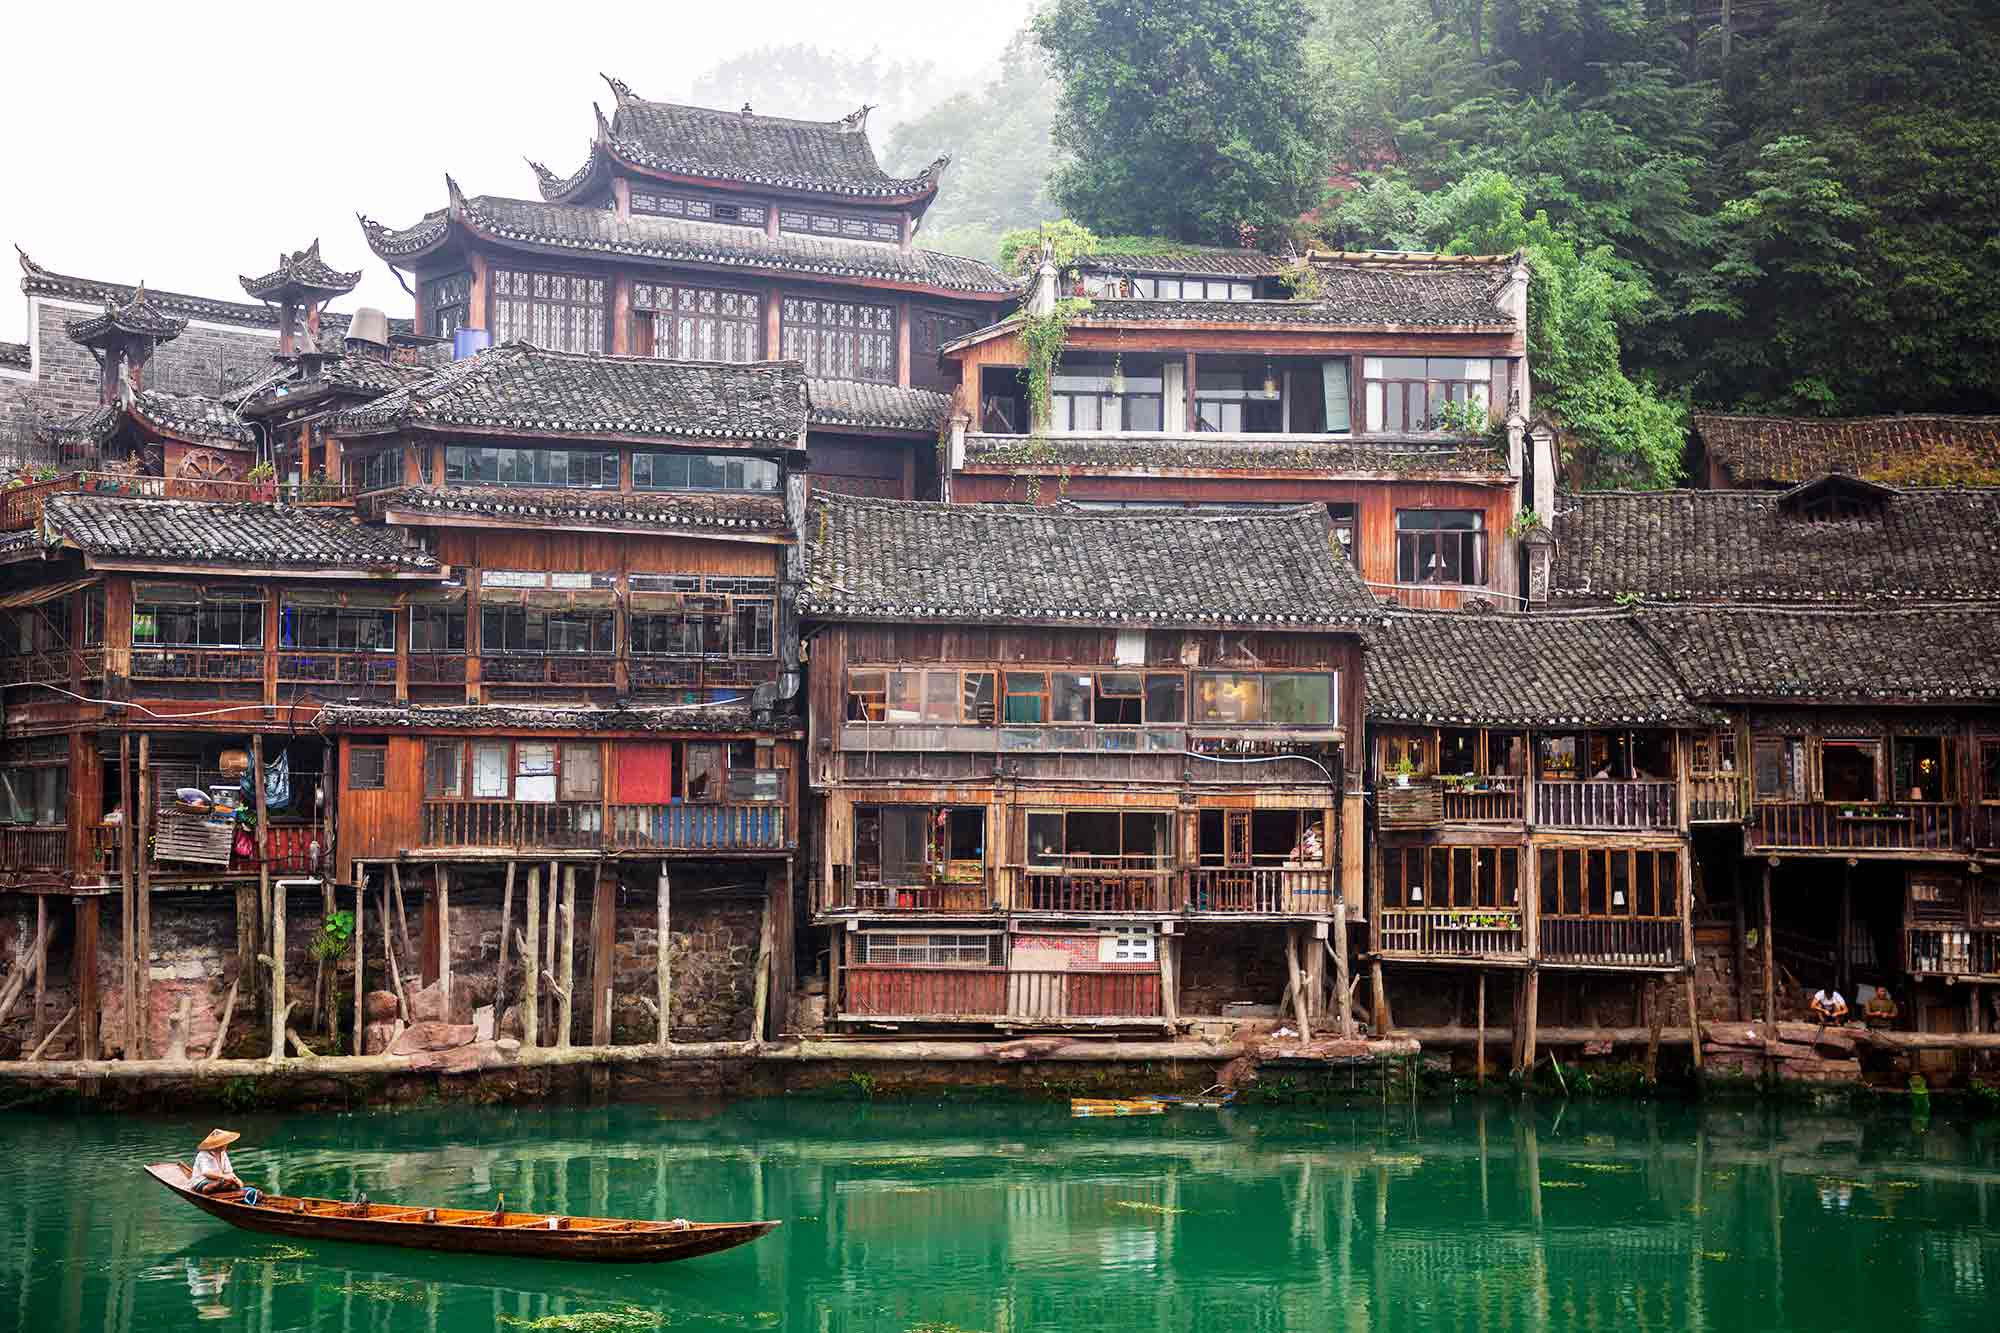 Fenghuang Ancient Town, is situated on the western boundary of Hunan Province in an area of outstanding natural beauty where mountains, water and blue skies prevail. 'Fenghuang' is Chinese for 'Phoenix', the mythical bird of good omen and longevity that is consumed by fire to be re-born again from the flames. Phoenix Ancient Town is so called as legend has it that two of these fabulous birds flew over it and found the Fenghuang Town so beautiful that they hovered there, reluctant to leave. © ULLI MAIER & NISA MAIER